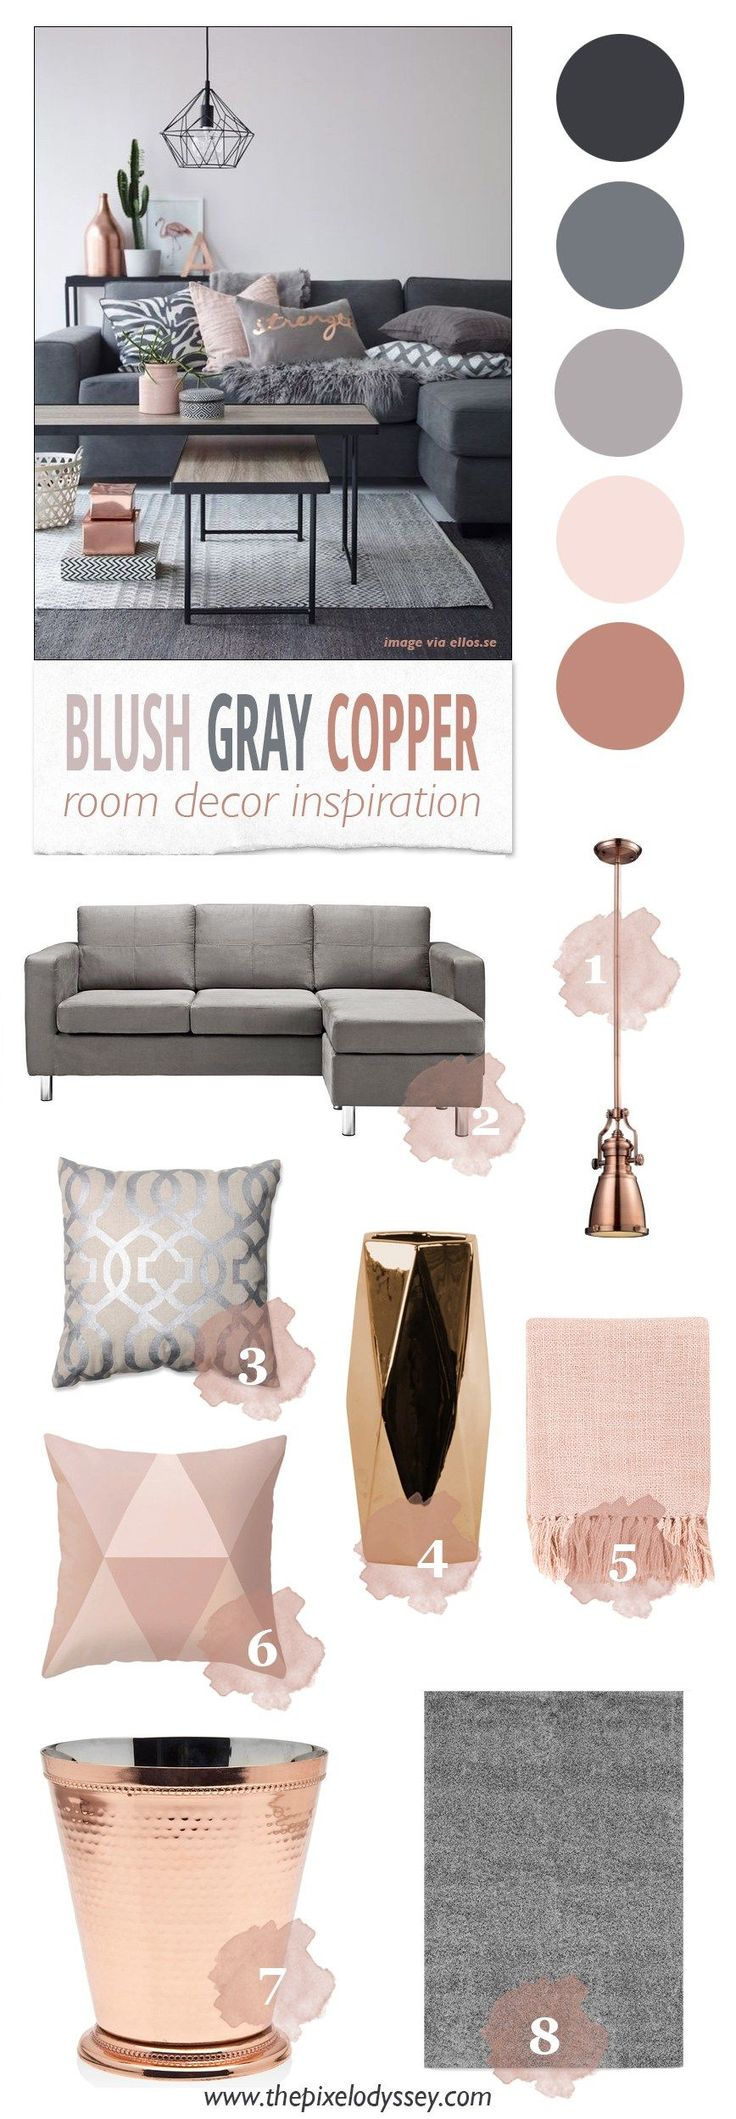 Blush Gray Copper Room Decor Inspiration Apartment Color SchemesInterior